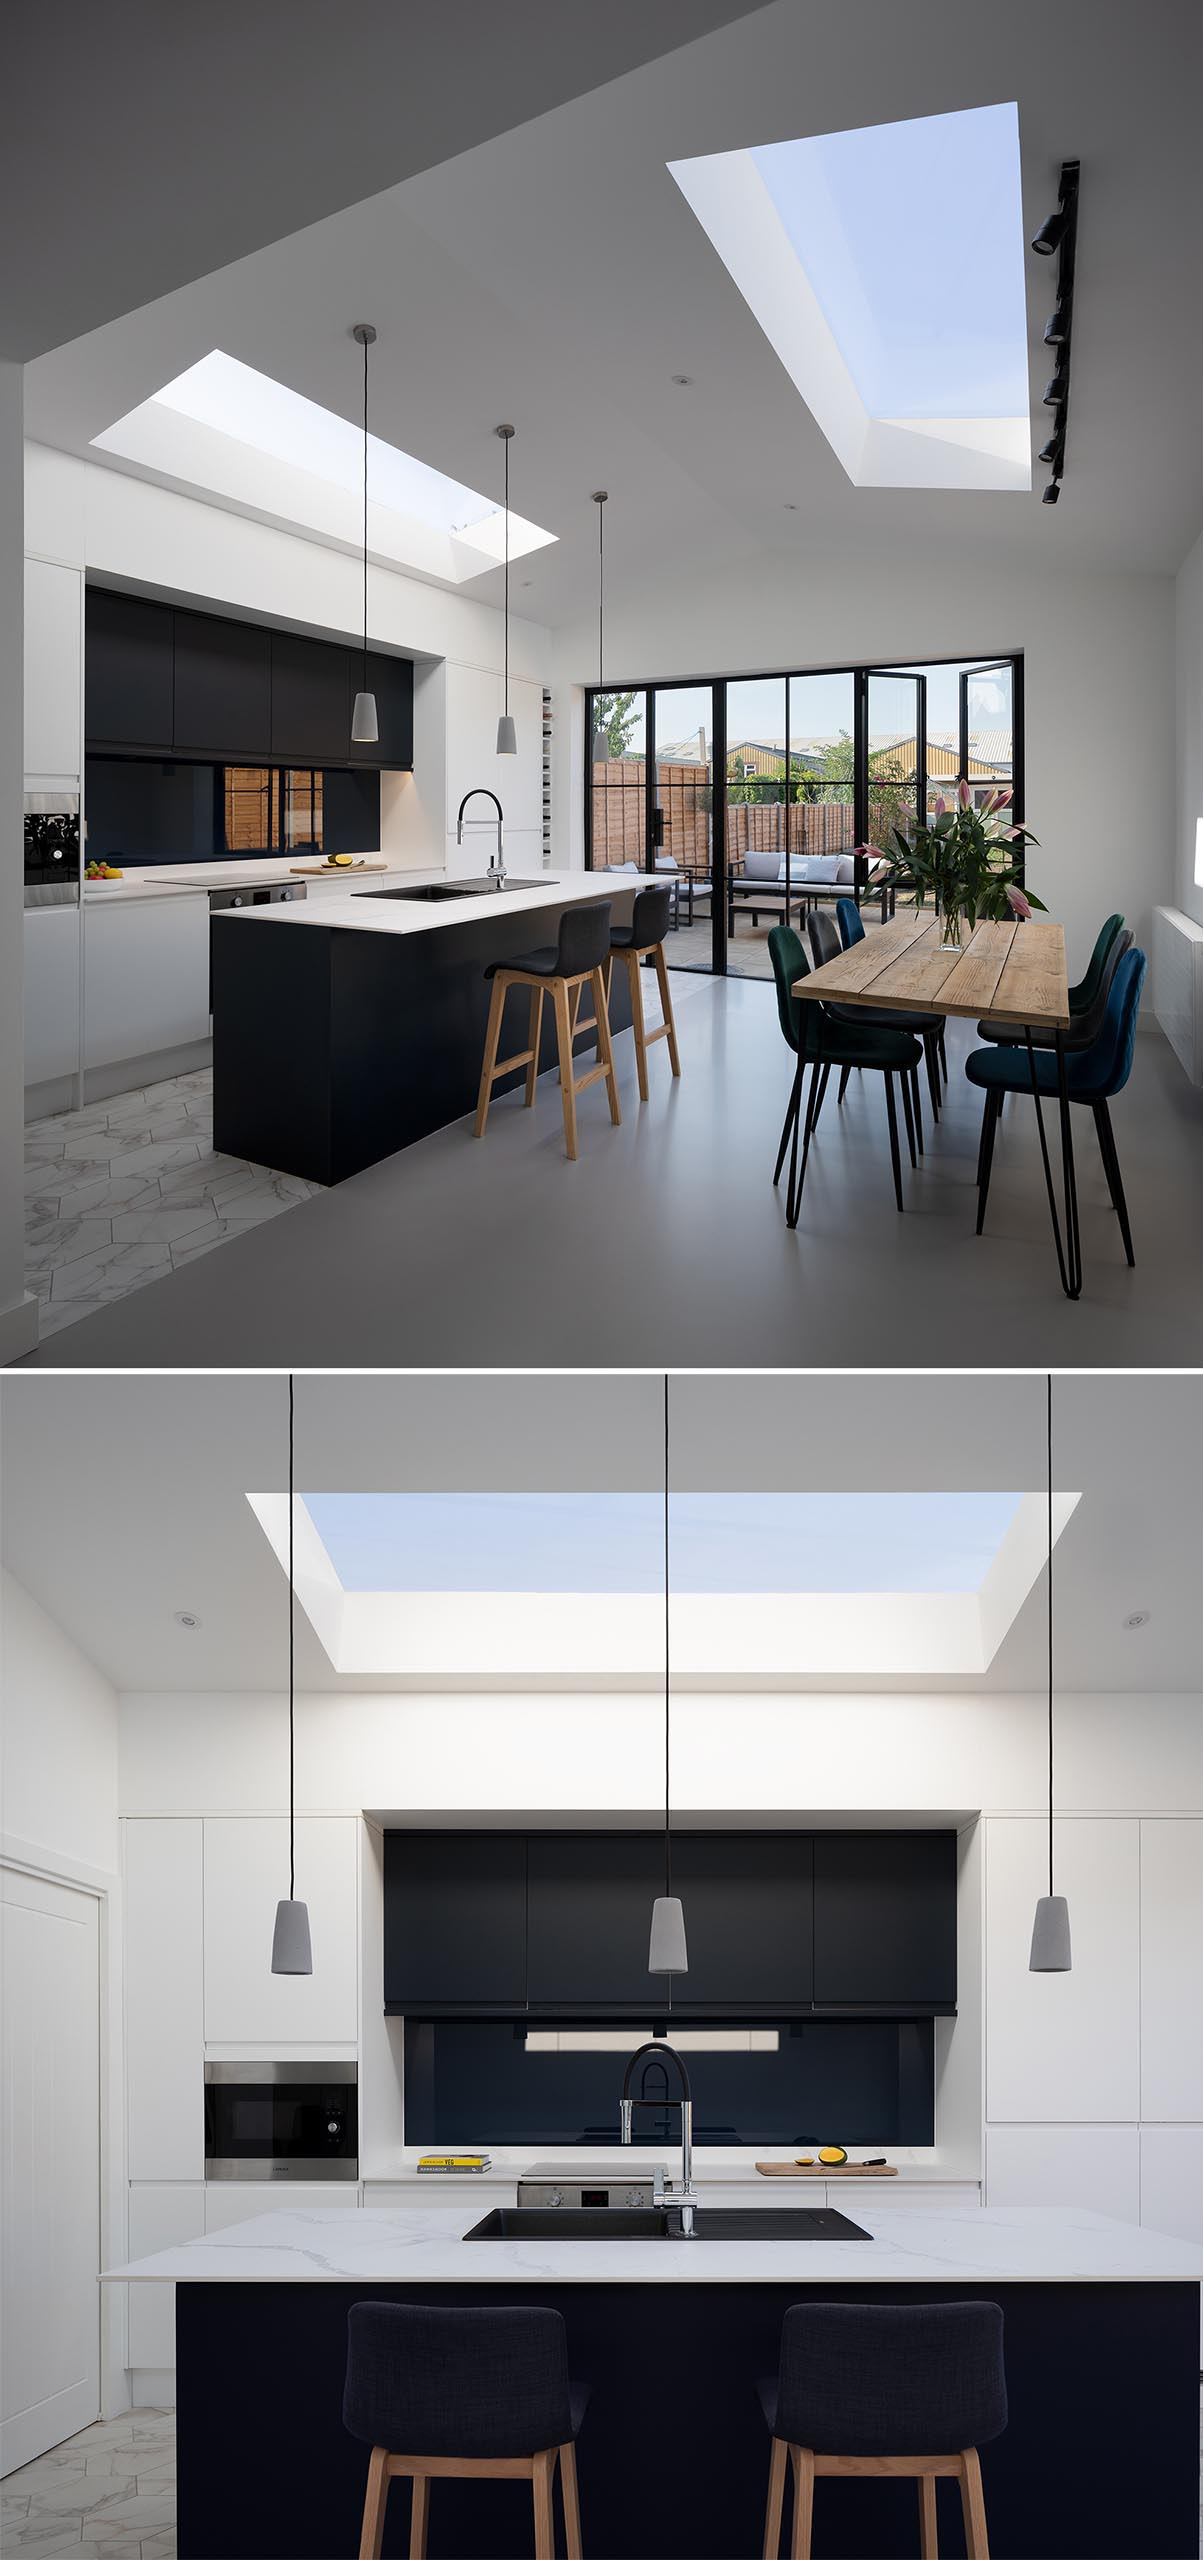 A modern open plan kitchen and dining room with a pitched ceiling and skylights.